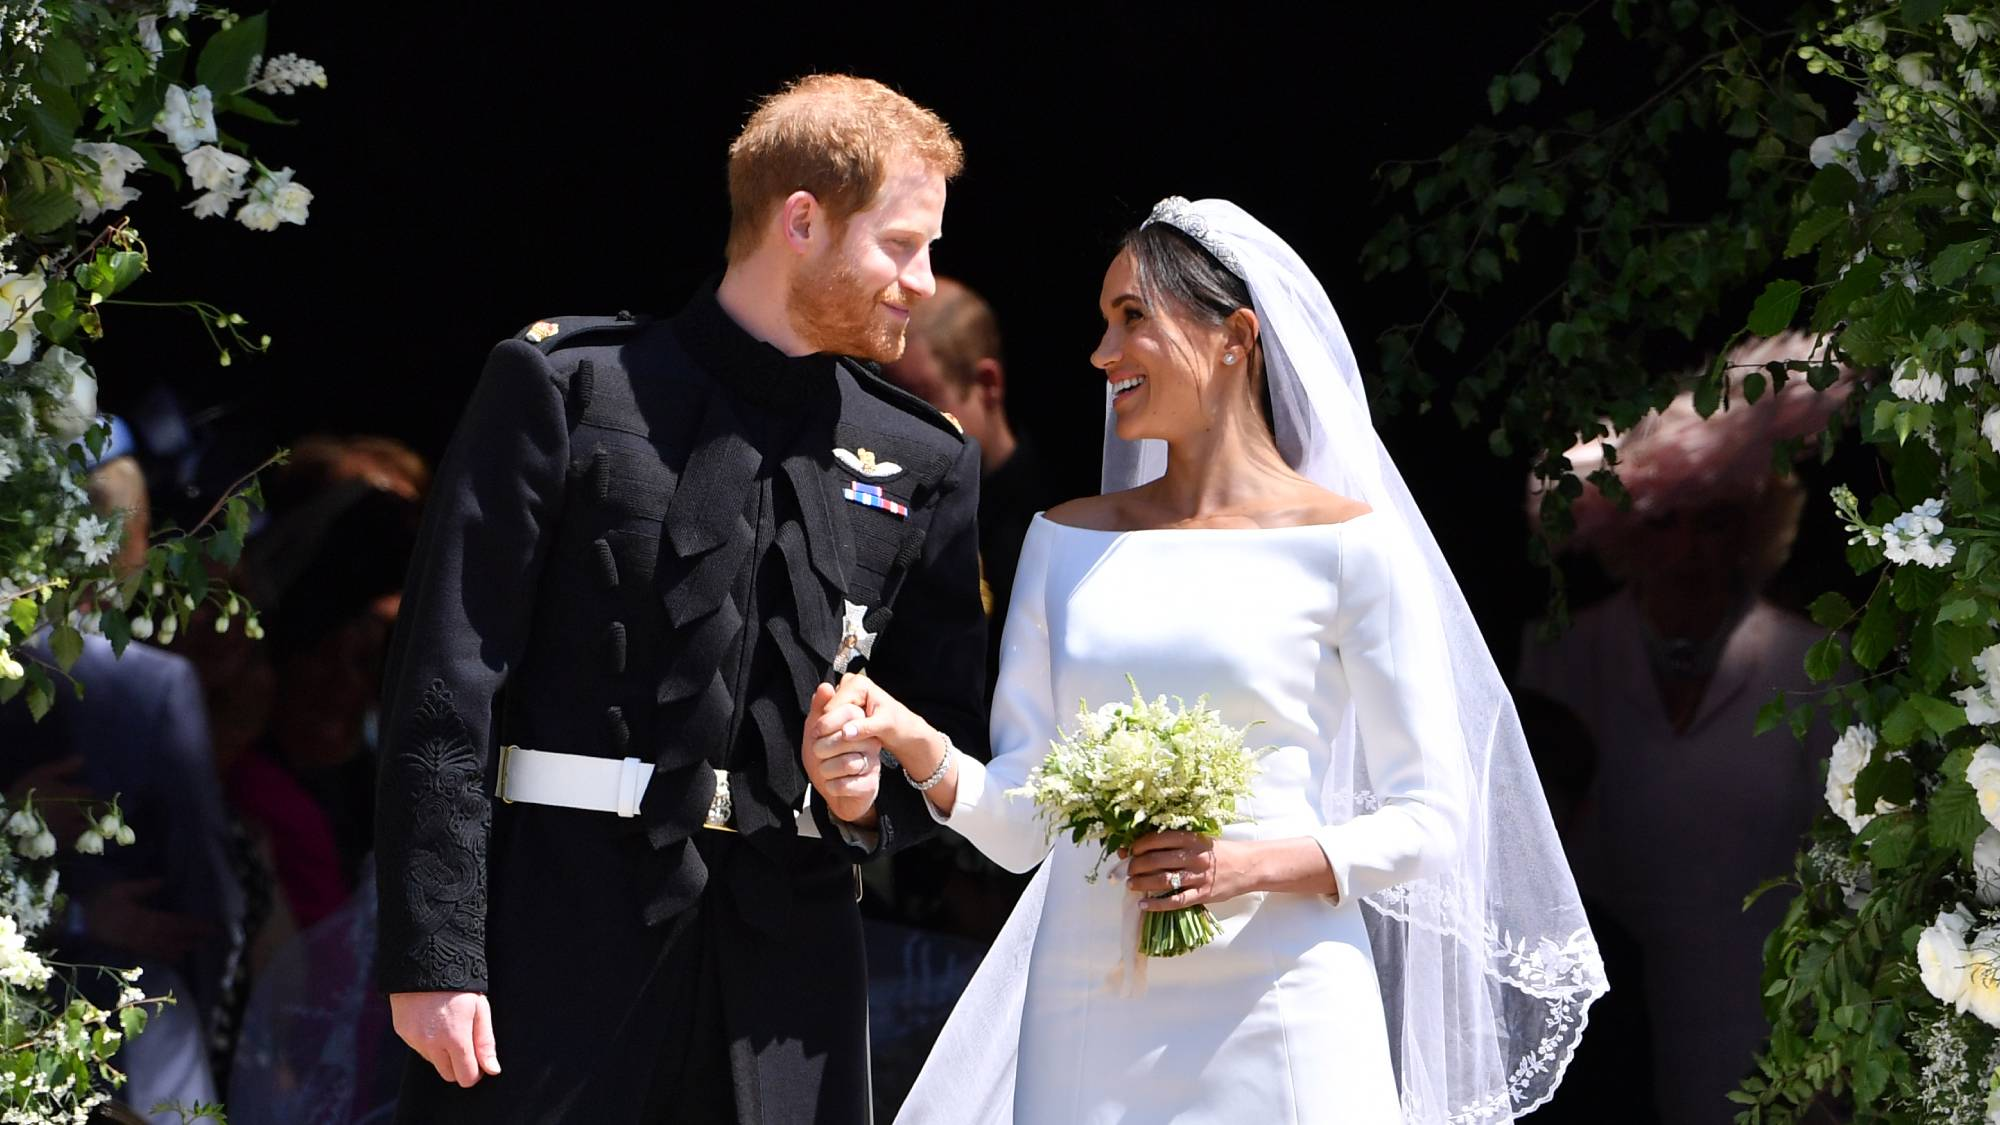 Why the Queen rejected Harry and Meghan's wedding wish